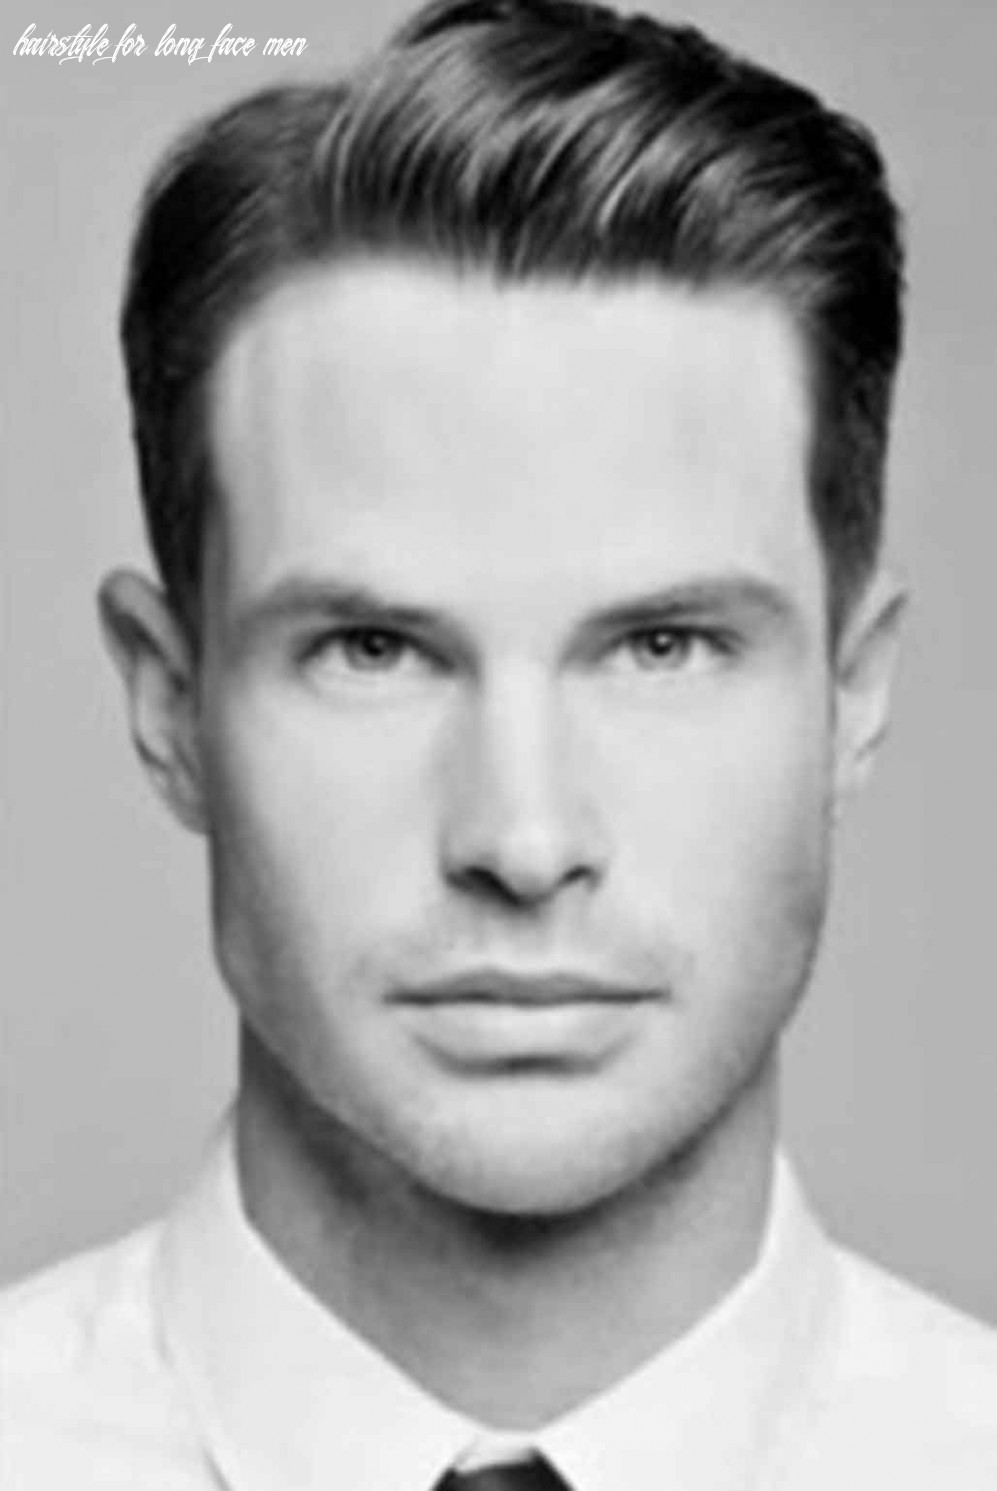 Hairstyle for oblong face men | oblong face hairstyles, oblong